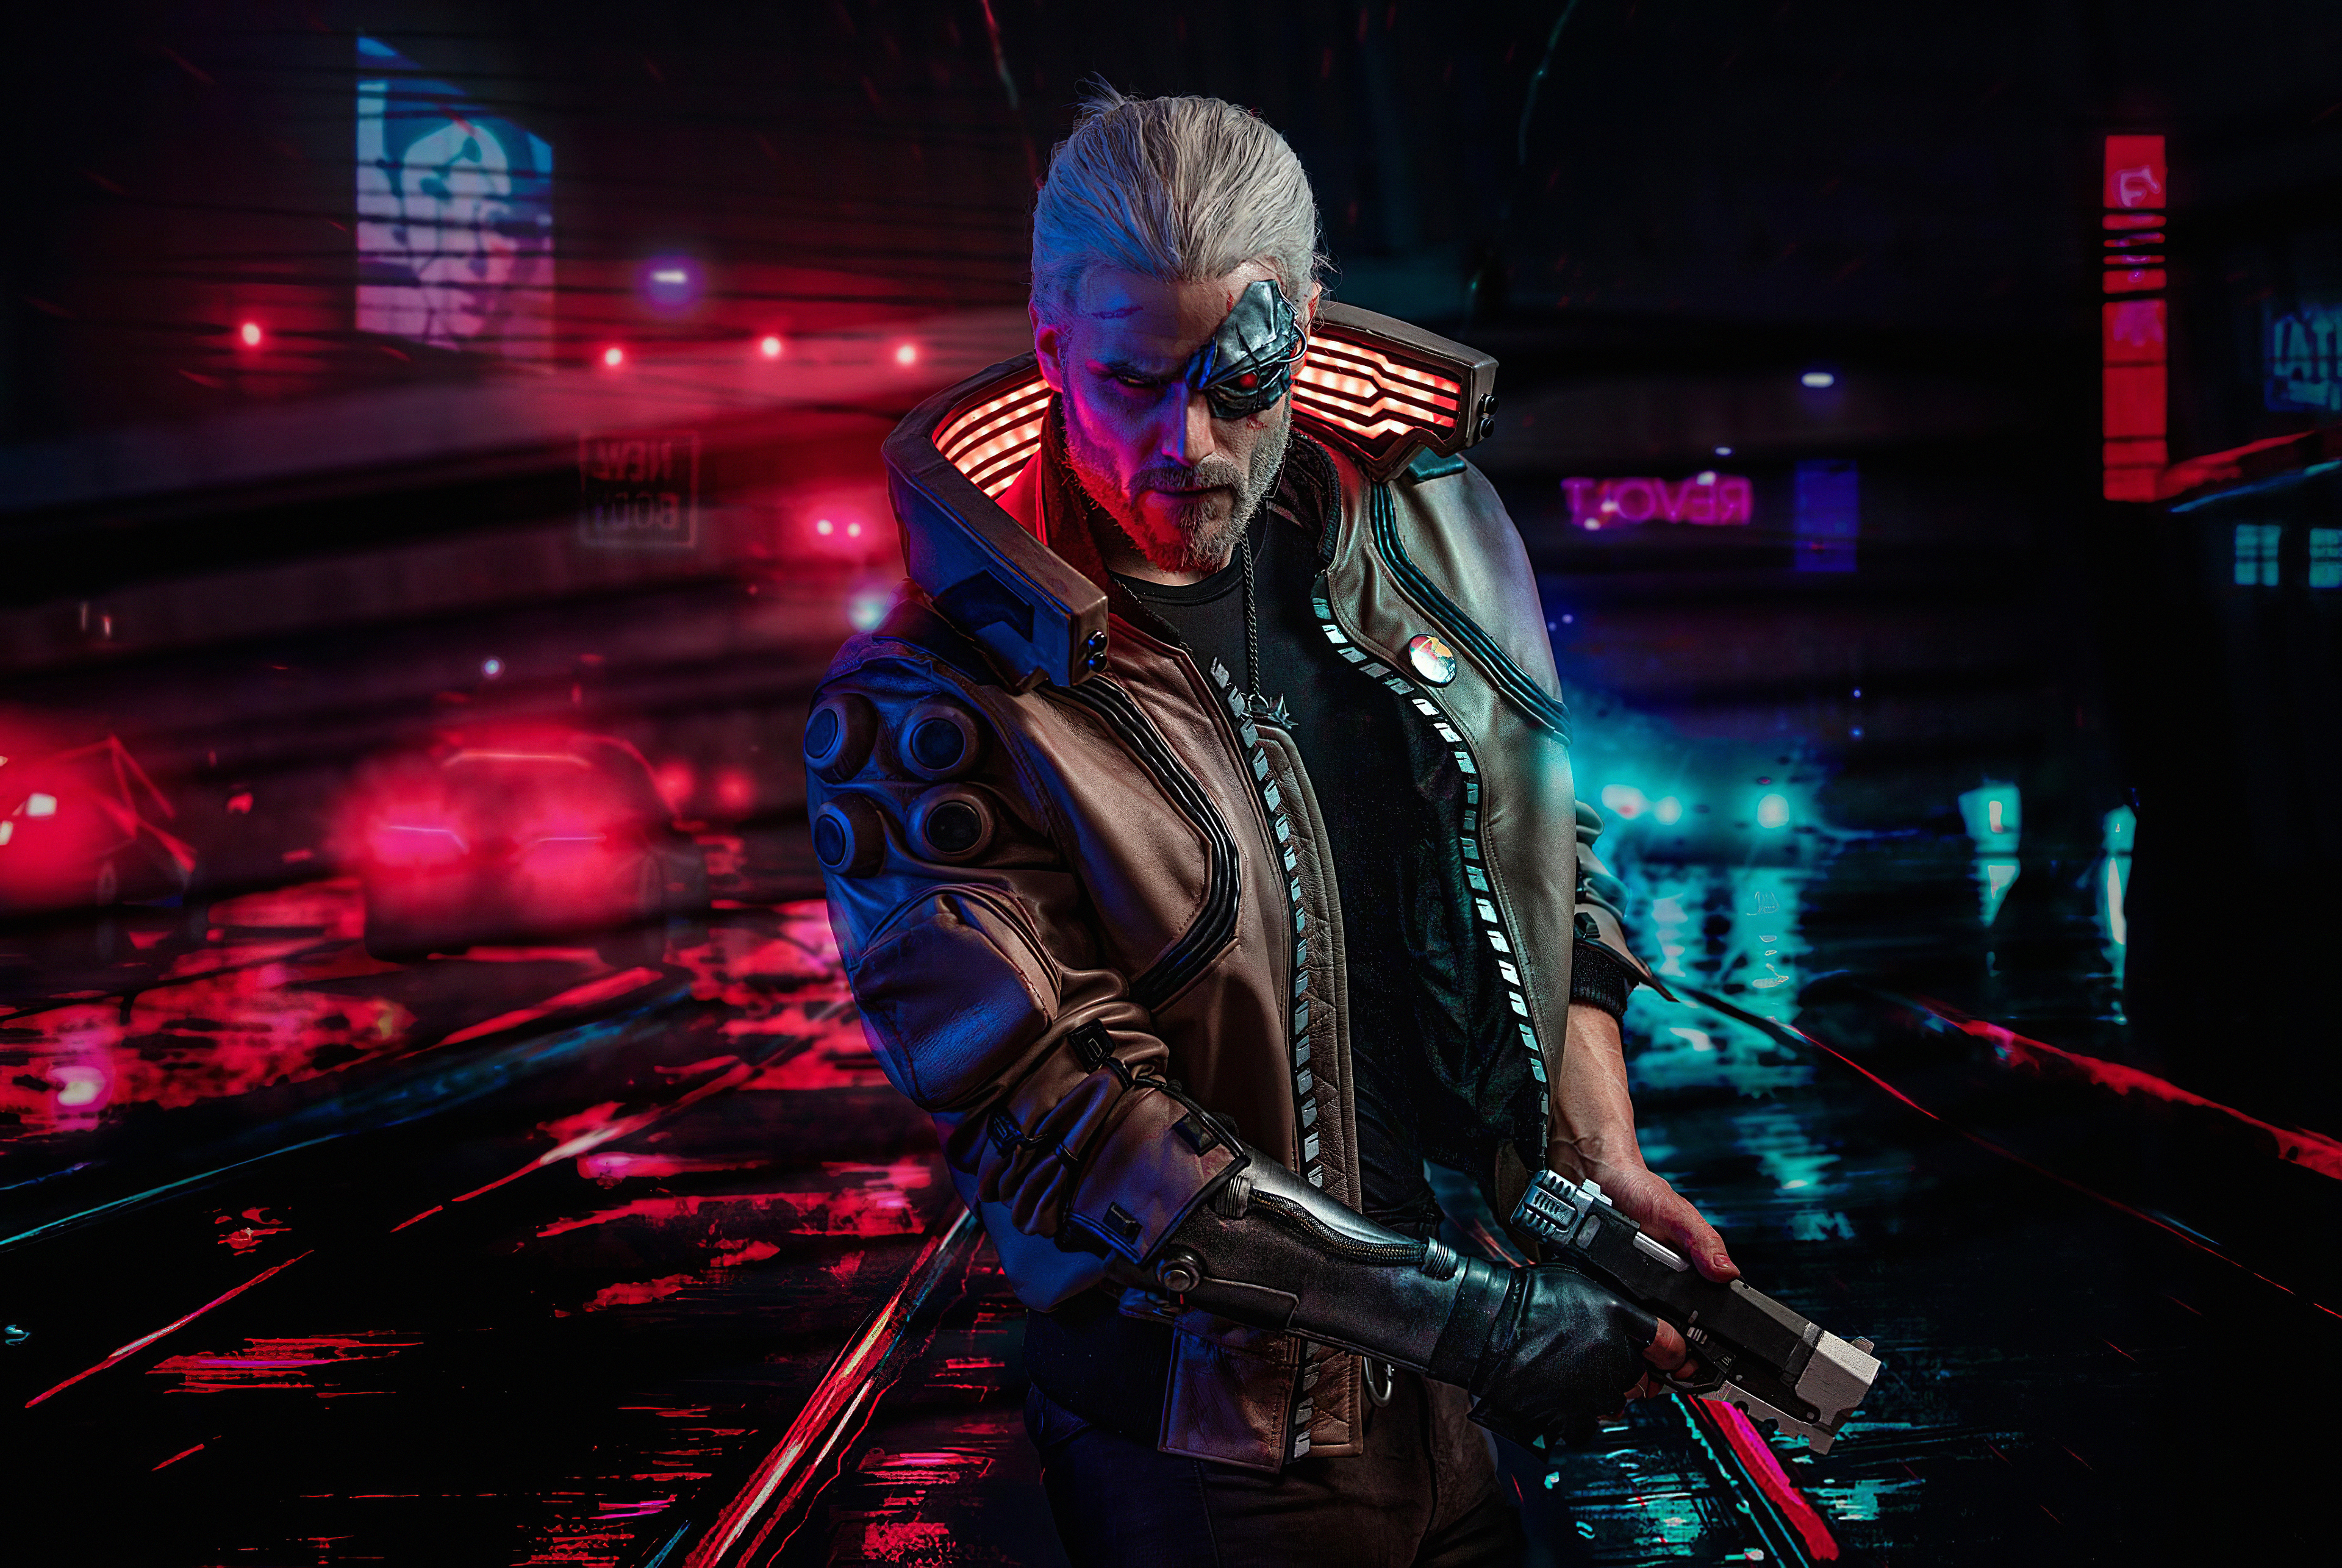 Cyberpunk 2077 Witcher, HD Games, 4k Wallpapers, Images ...